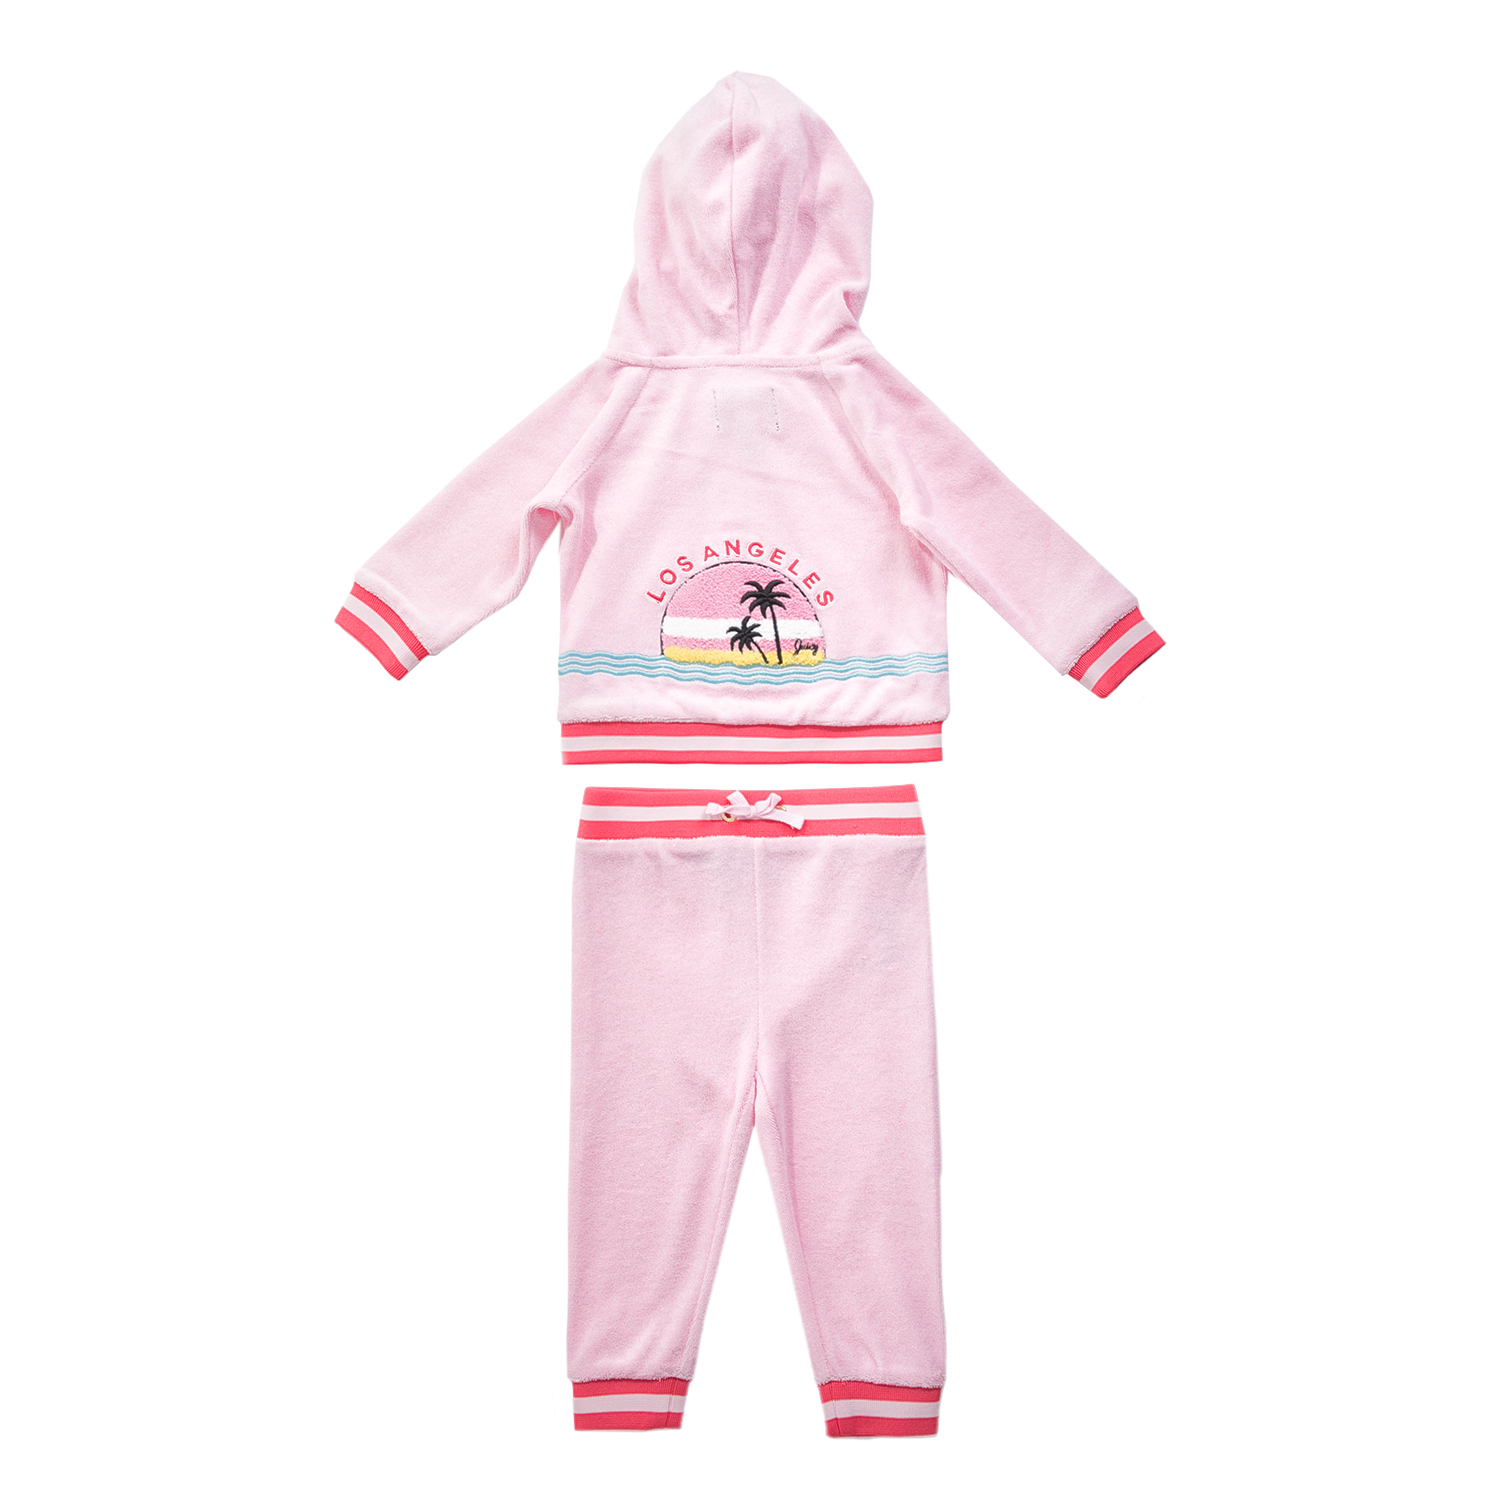 JUICY COUTURE KIDS - Σετ φόρμας ζακέτα-παντελόνι JUICY COUTURE ροζ ... 3e2e6abc460